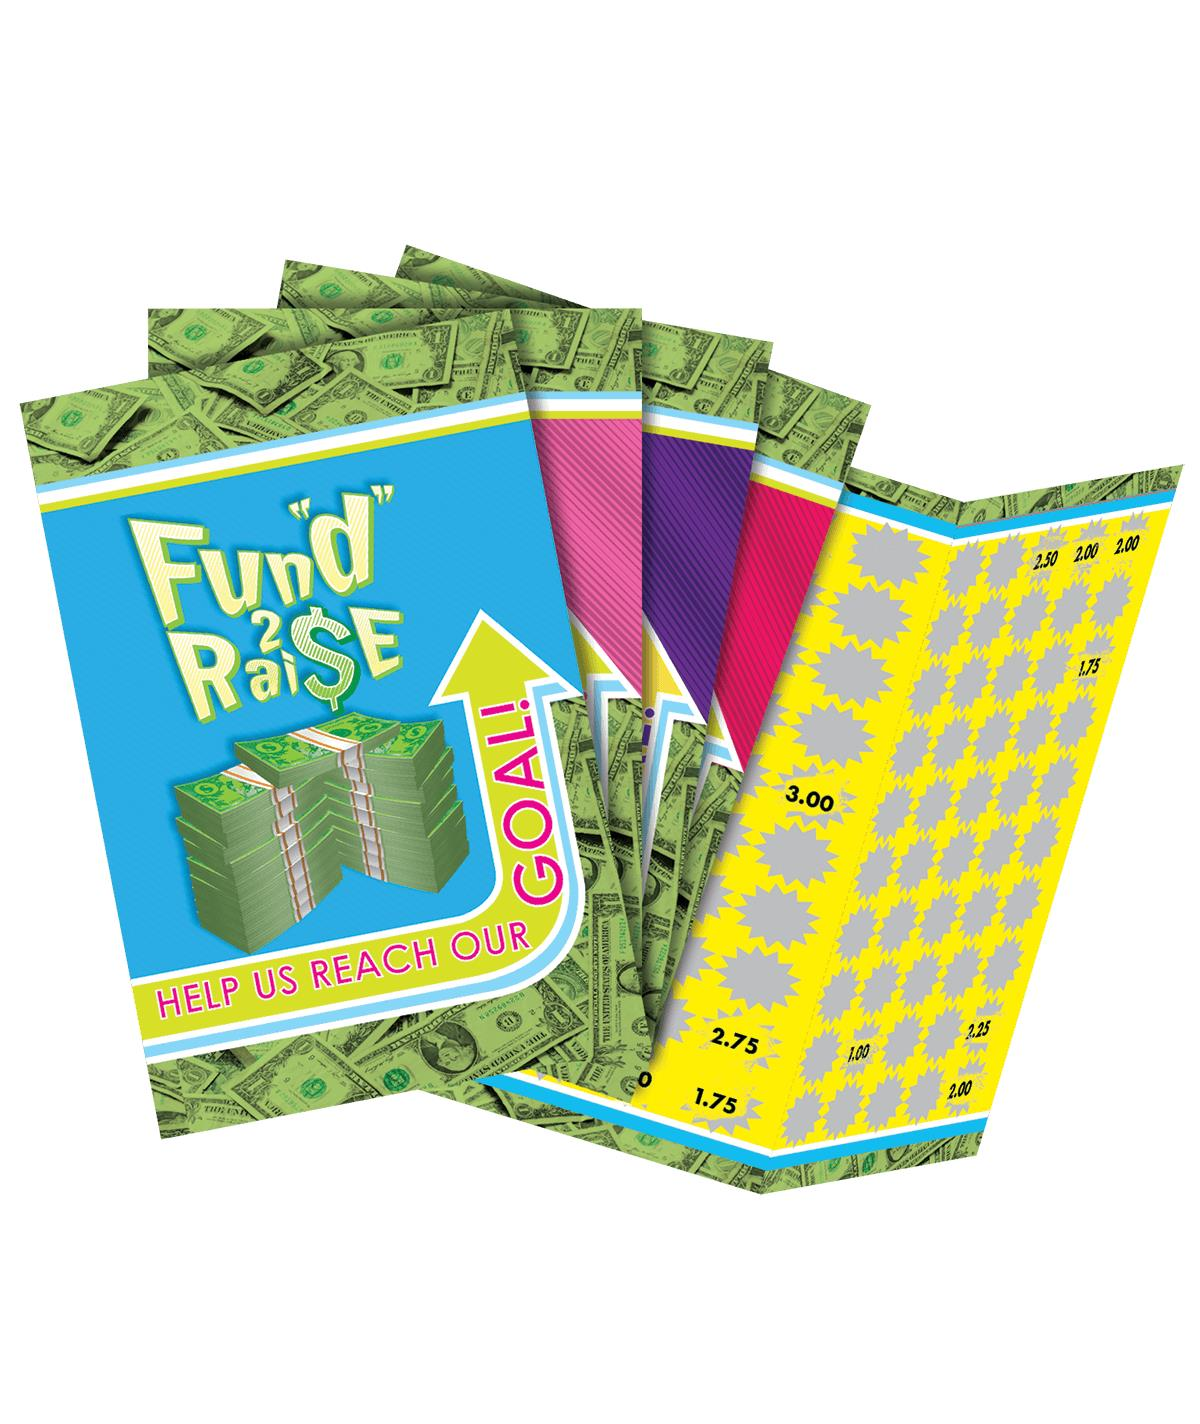 FUND 2 RAISE CARDS